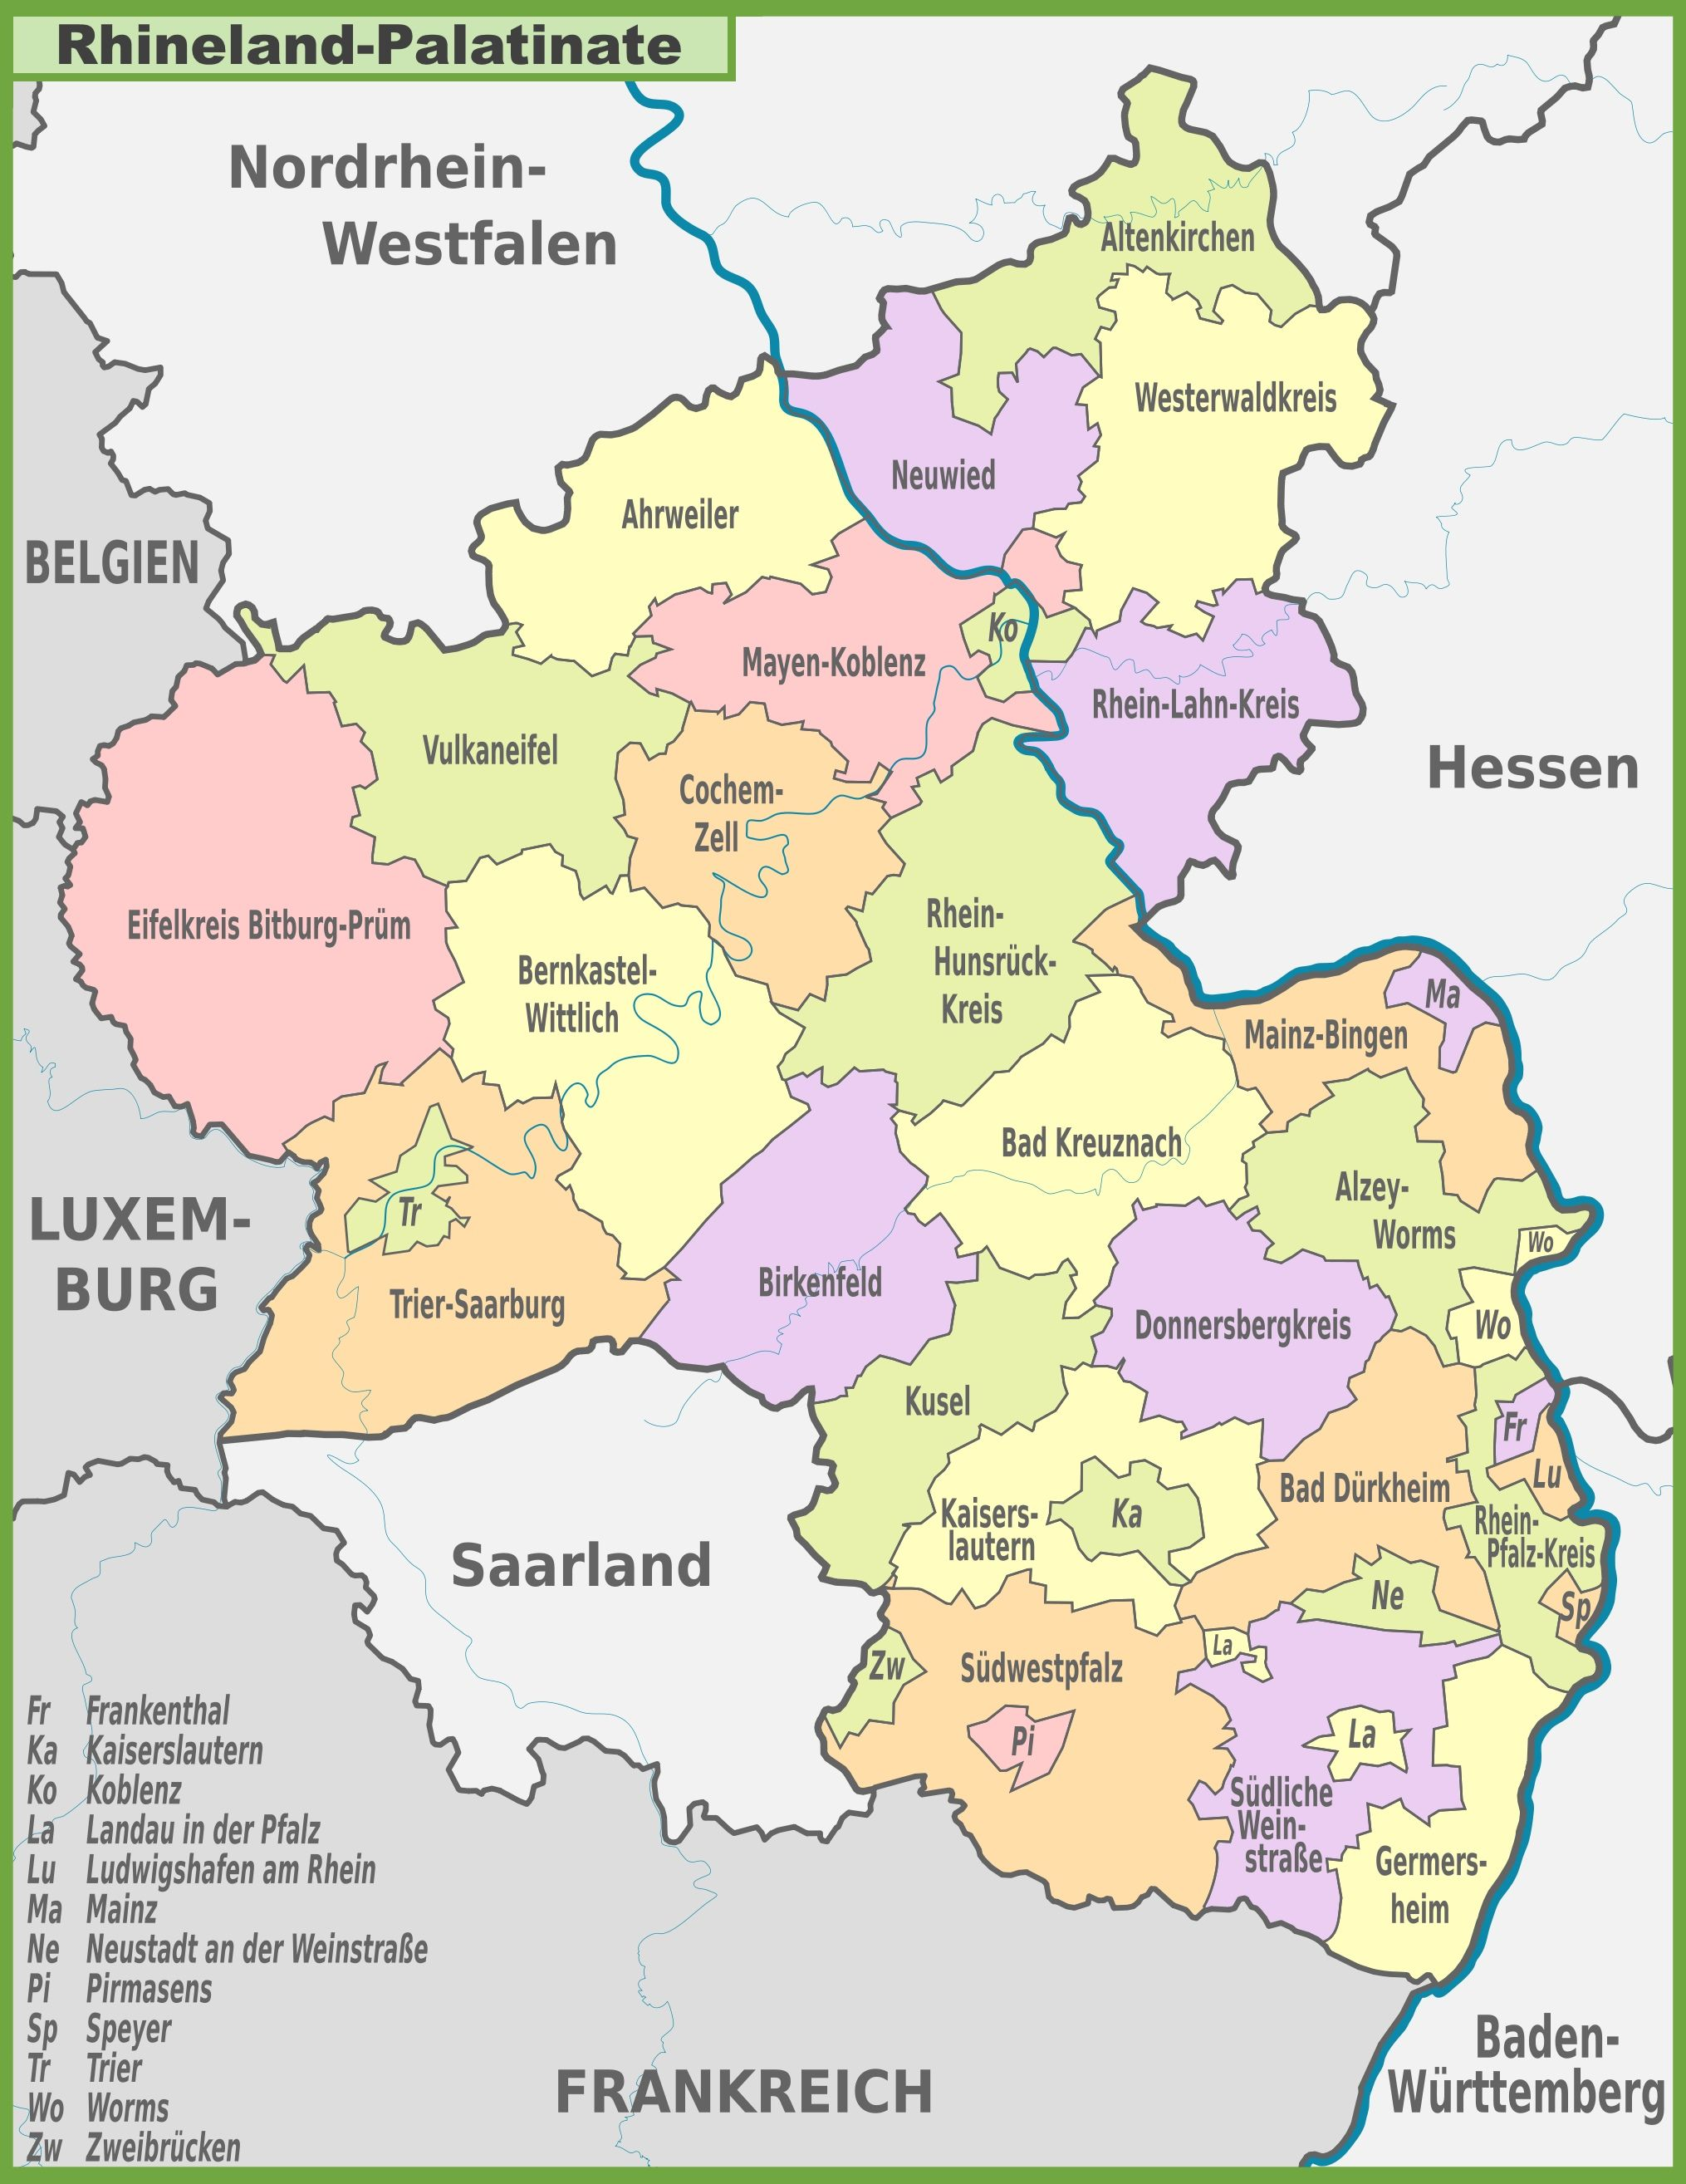 Pin by Tom Stair on maps | Map, Germany, Rhineland palatinate